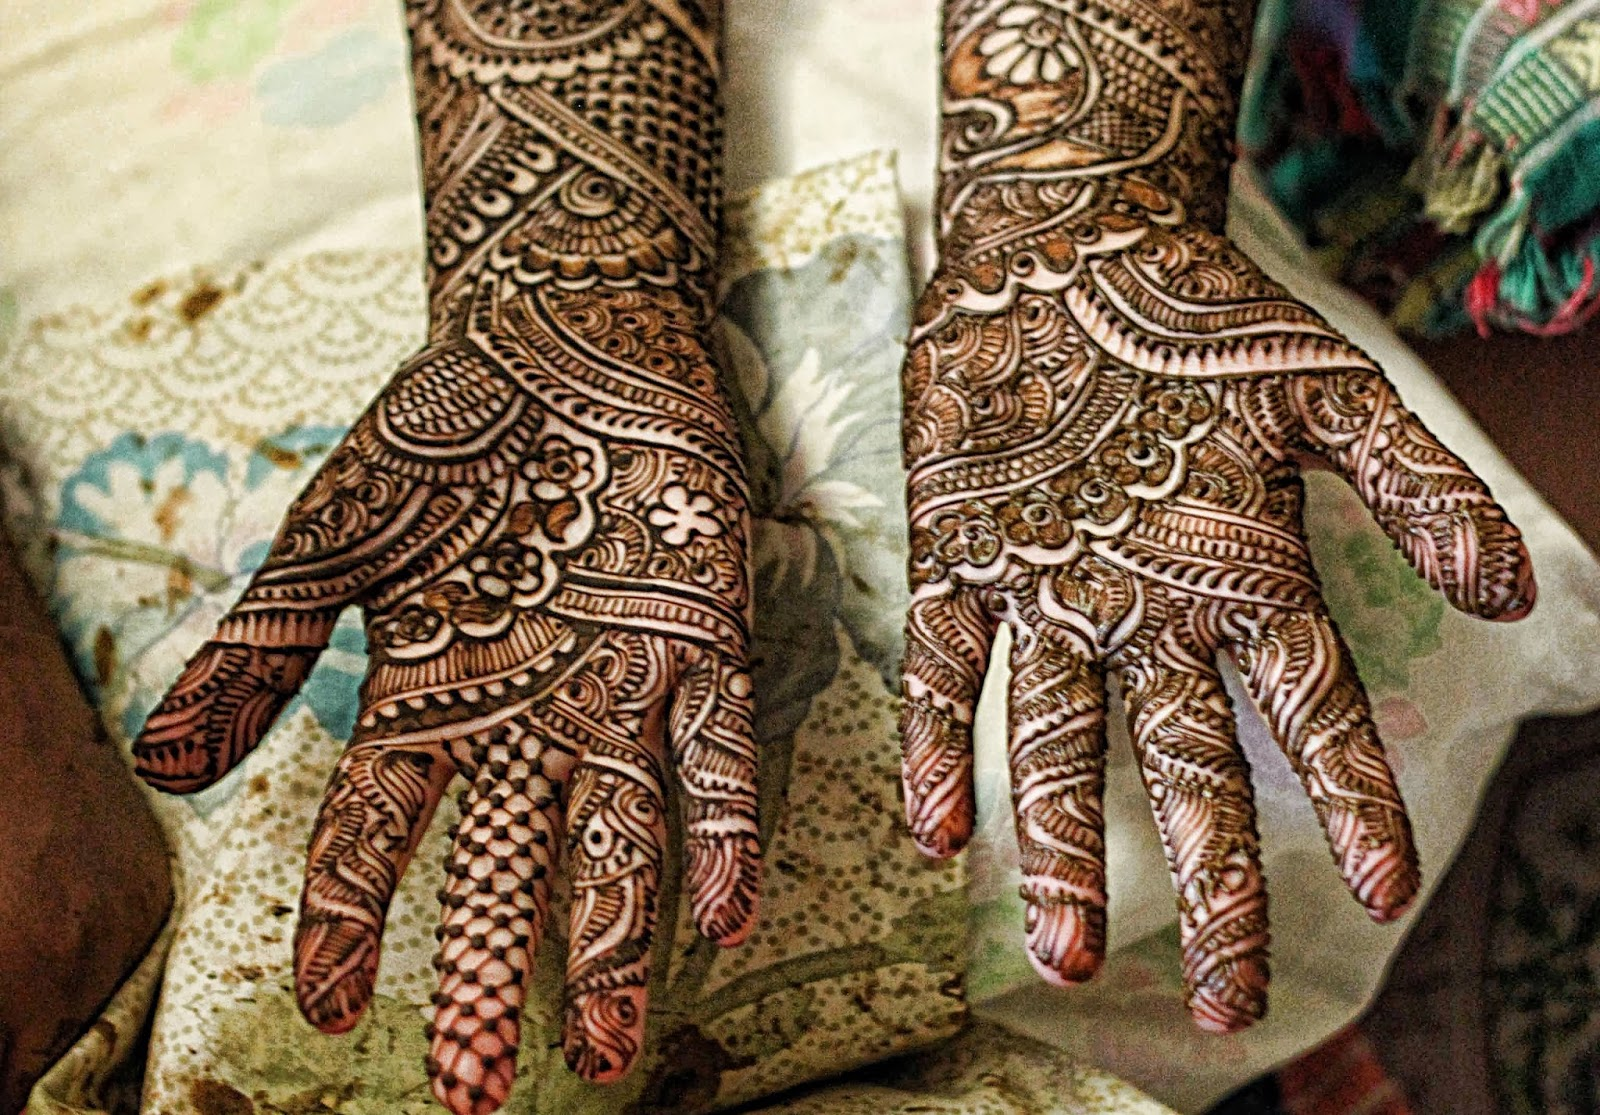 Henna Tattoos: Exquisite, Impermanent Stains